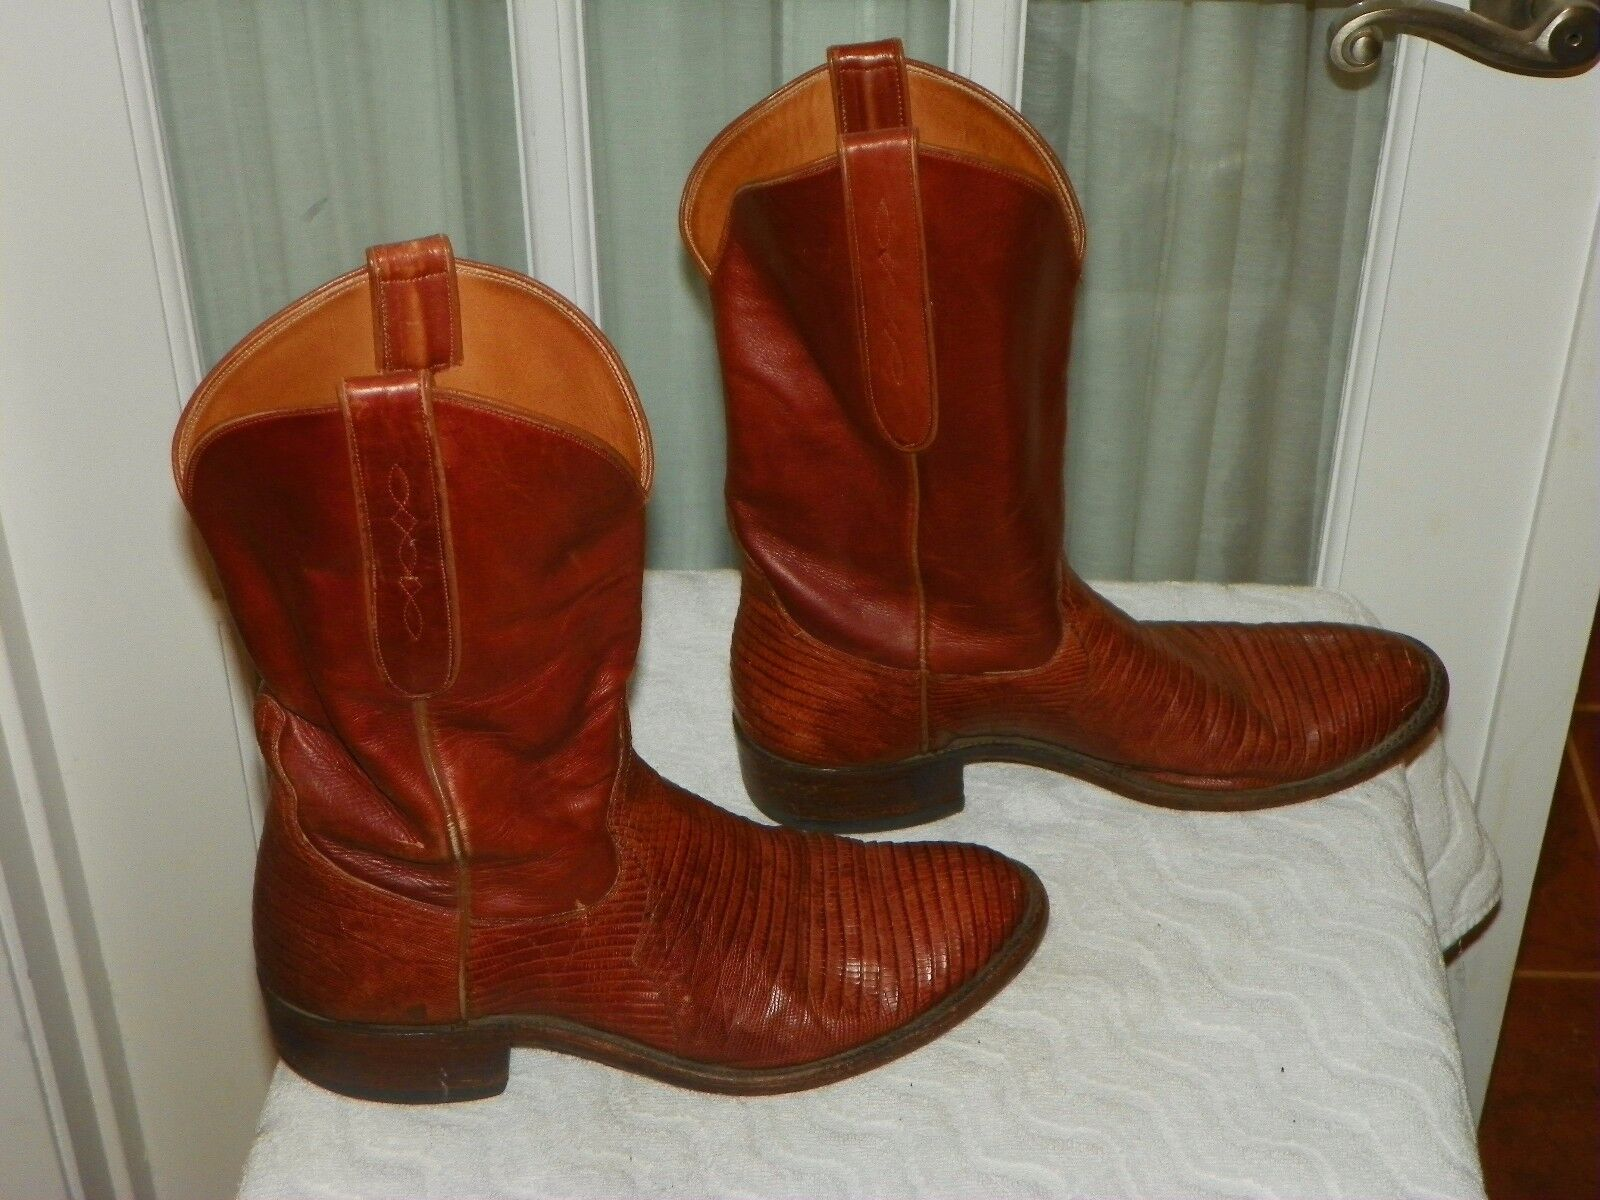 1980s COLT BOOTMAKERS Brown Lizard Cowboy Western Stivali Uomo size 8.5 D USA made